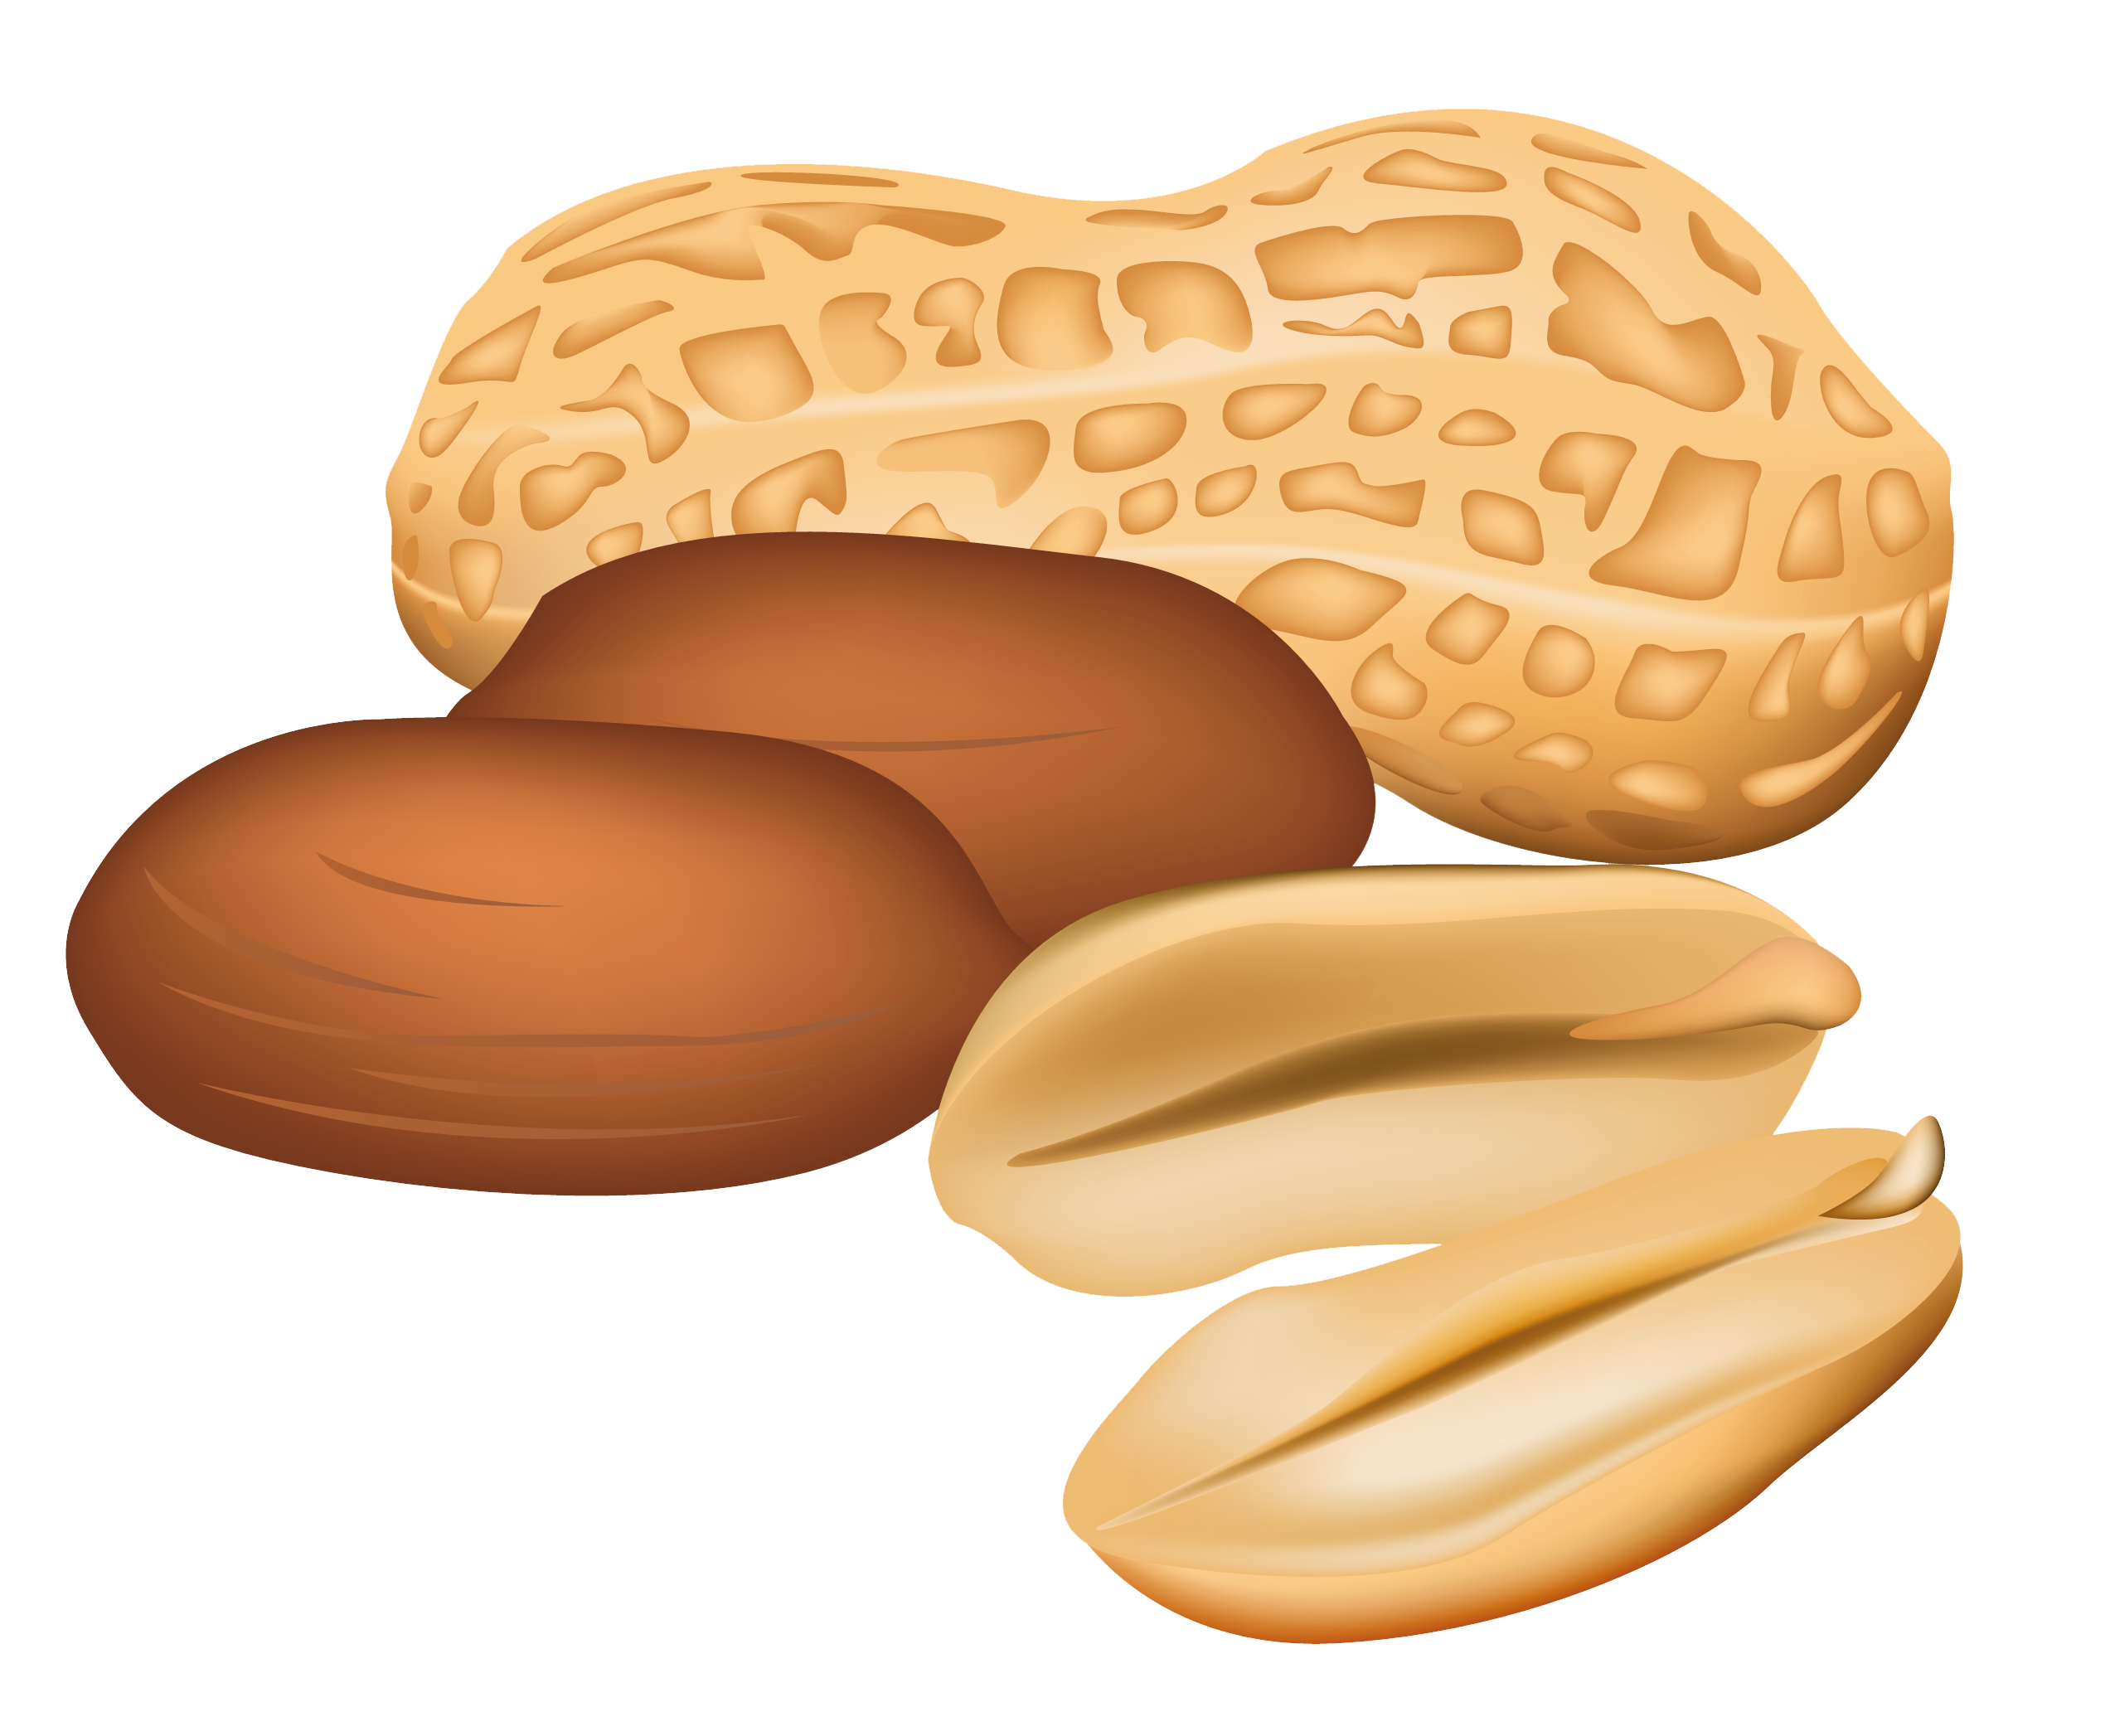 Transparent peanut. Free nuts cliparts download